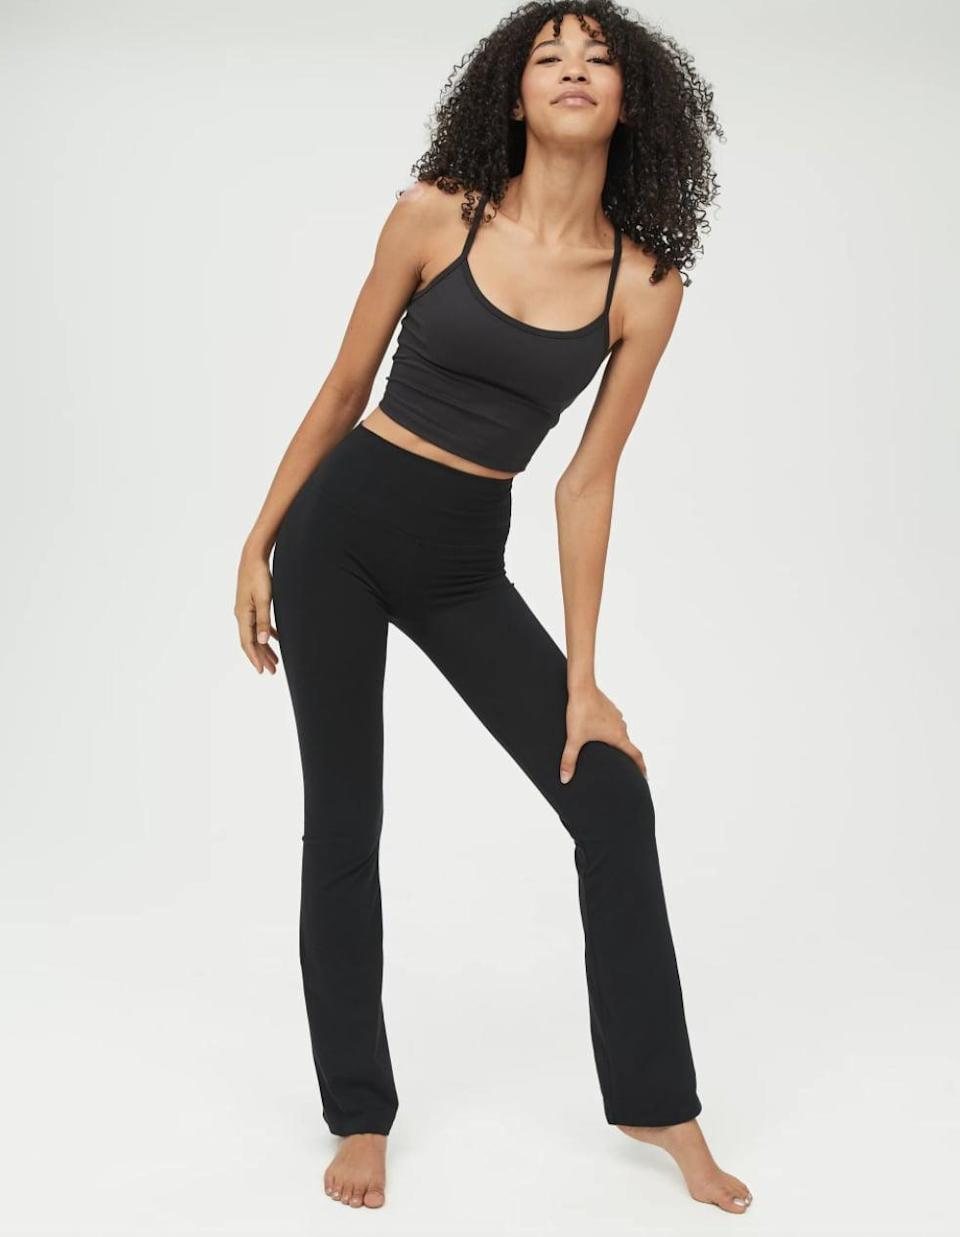 <p>If you struggle to find pants that are the right length for you, check out the <span>American Eagle Offline OG High Waisted Flare Leggings</span> ($21). Offline offers three different lengths in each size - short, regular, and long - so you don't have to worry about exposed ankles or tripping over the hem.</p>